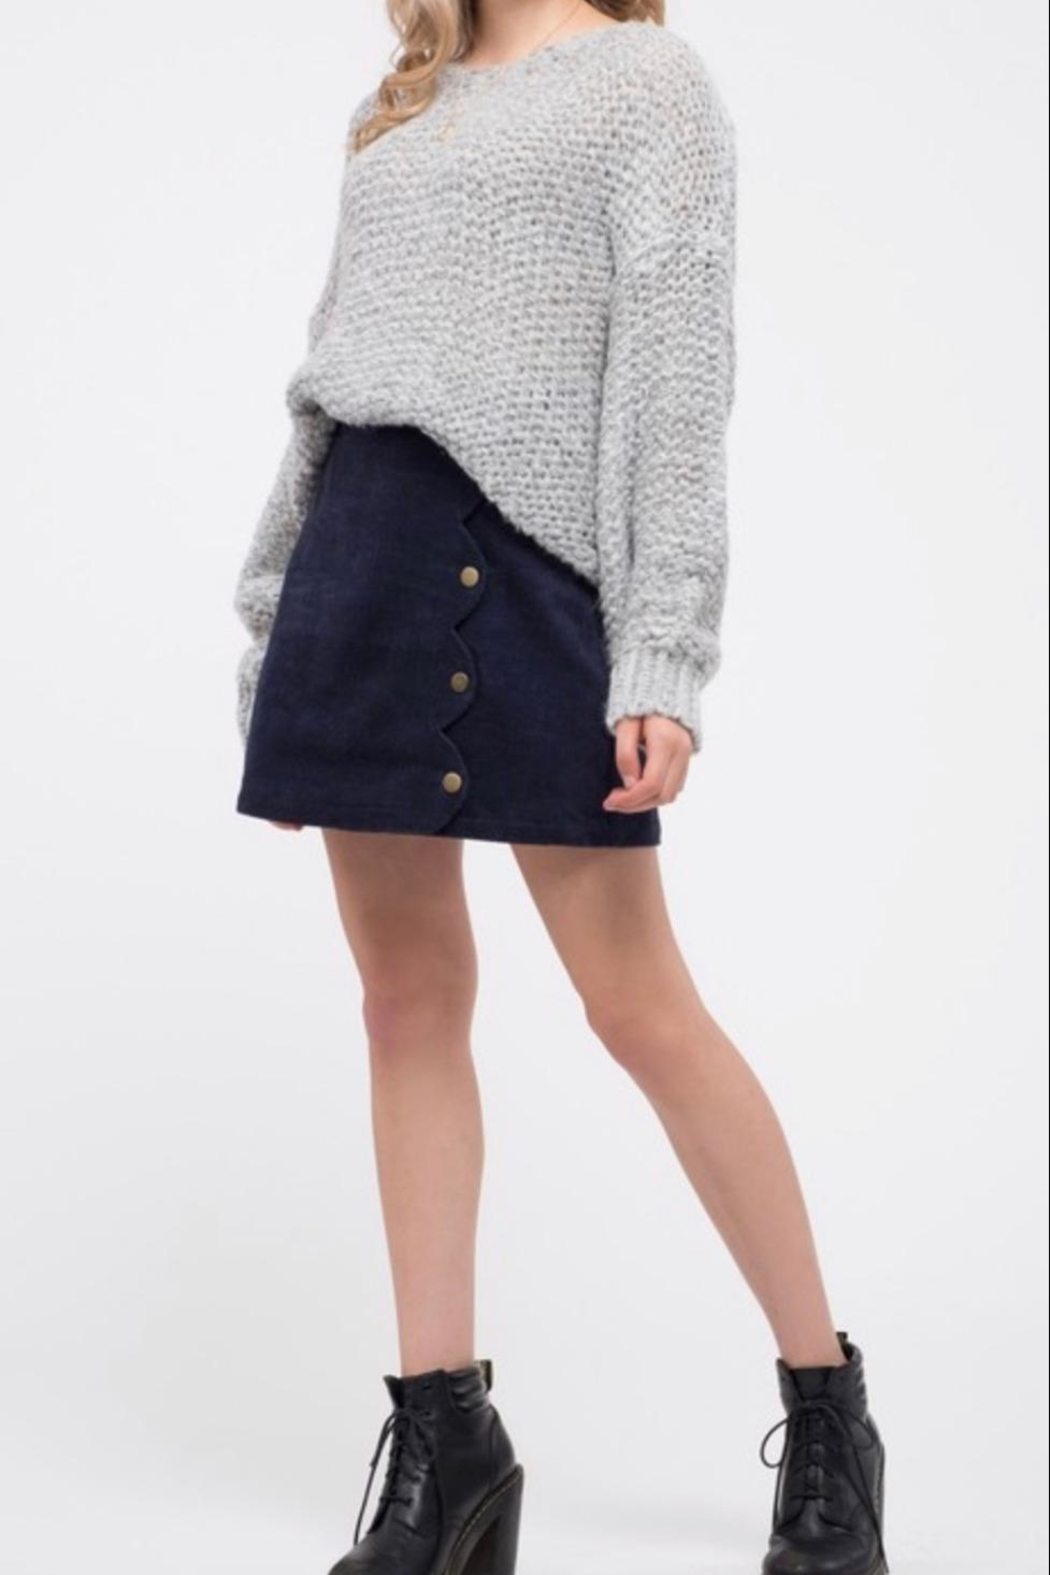 Blu Pepper Chunky Knit Sweater - Back Cropped Image